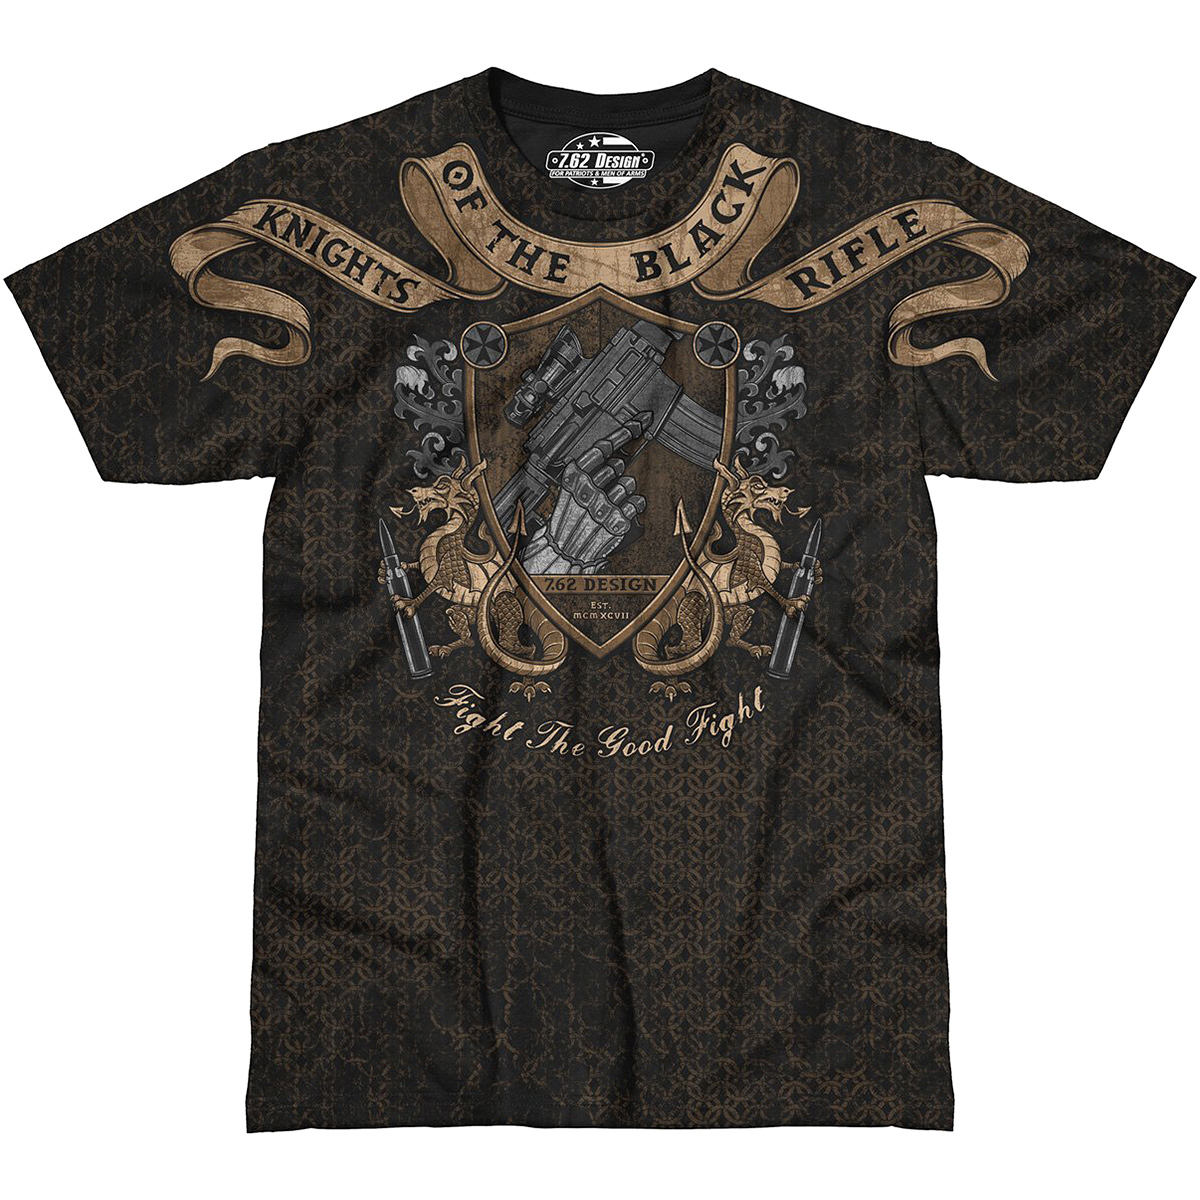 Design mens knights of the black rifle t shirt for Army design shirts online